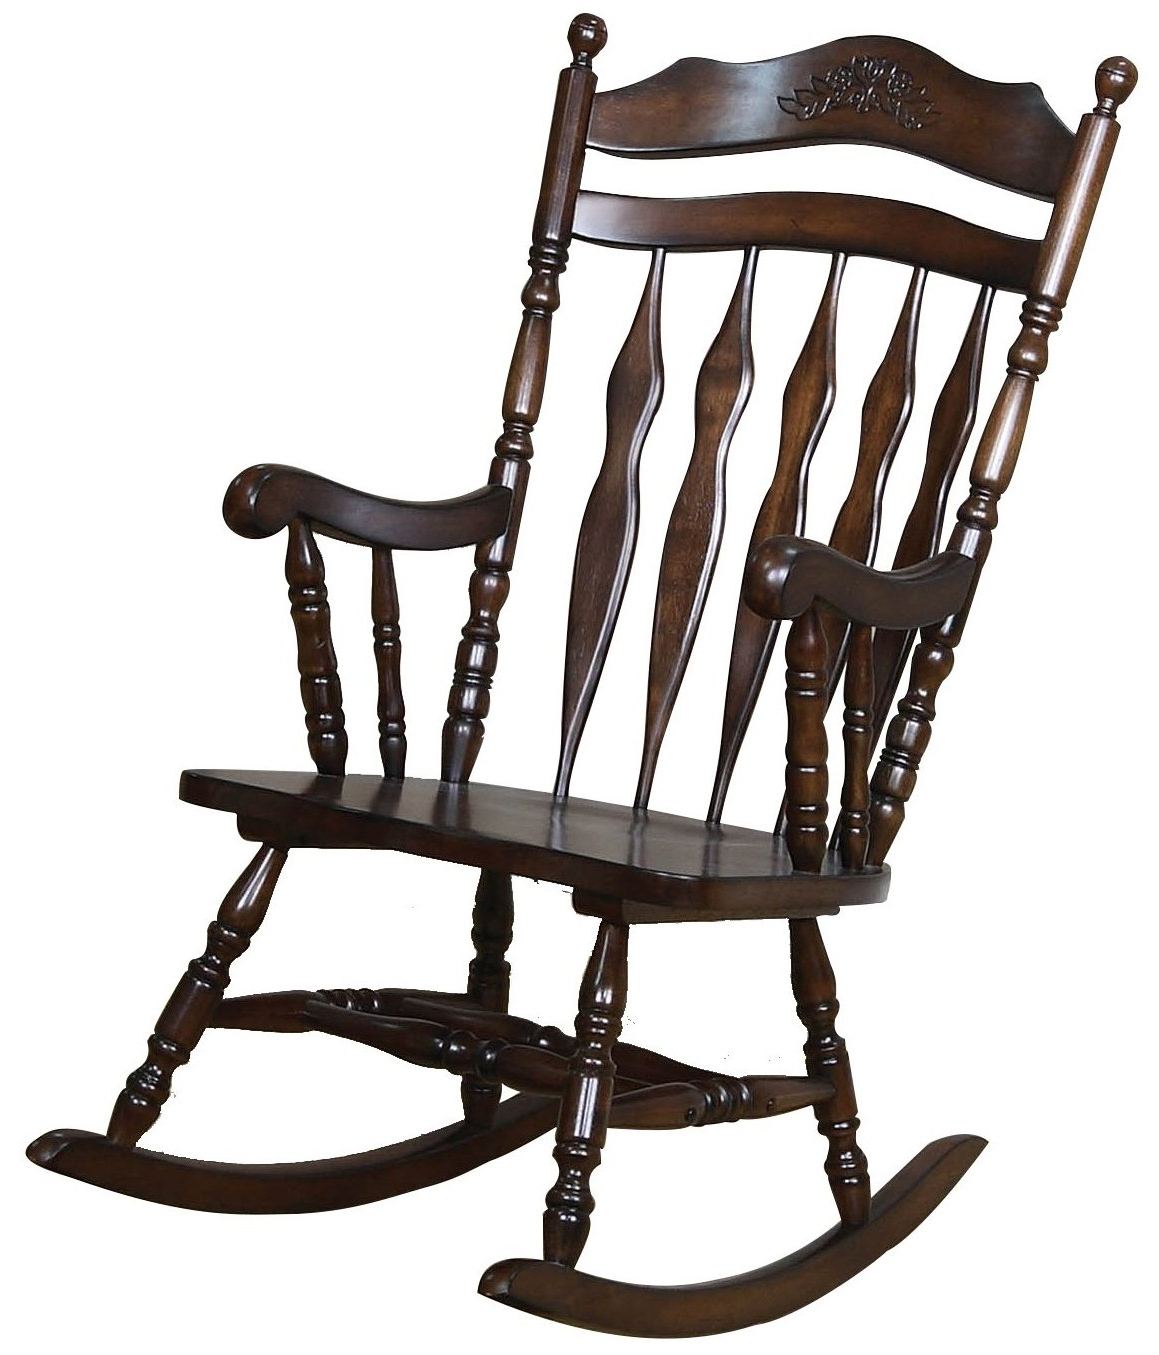 Preferred Antique Rocking Chair: Amazon In Amazon Rocking Chairs (View 11 of 15)